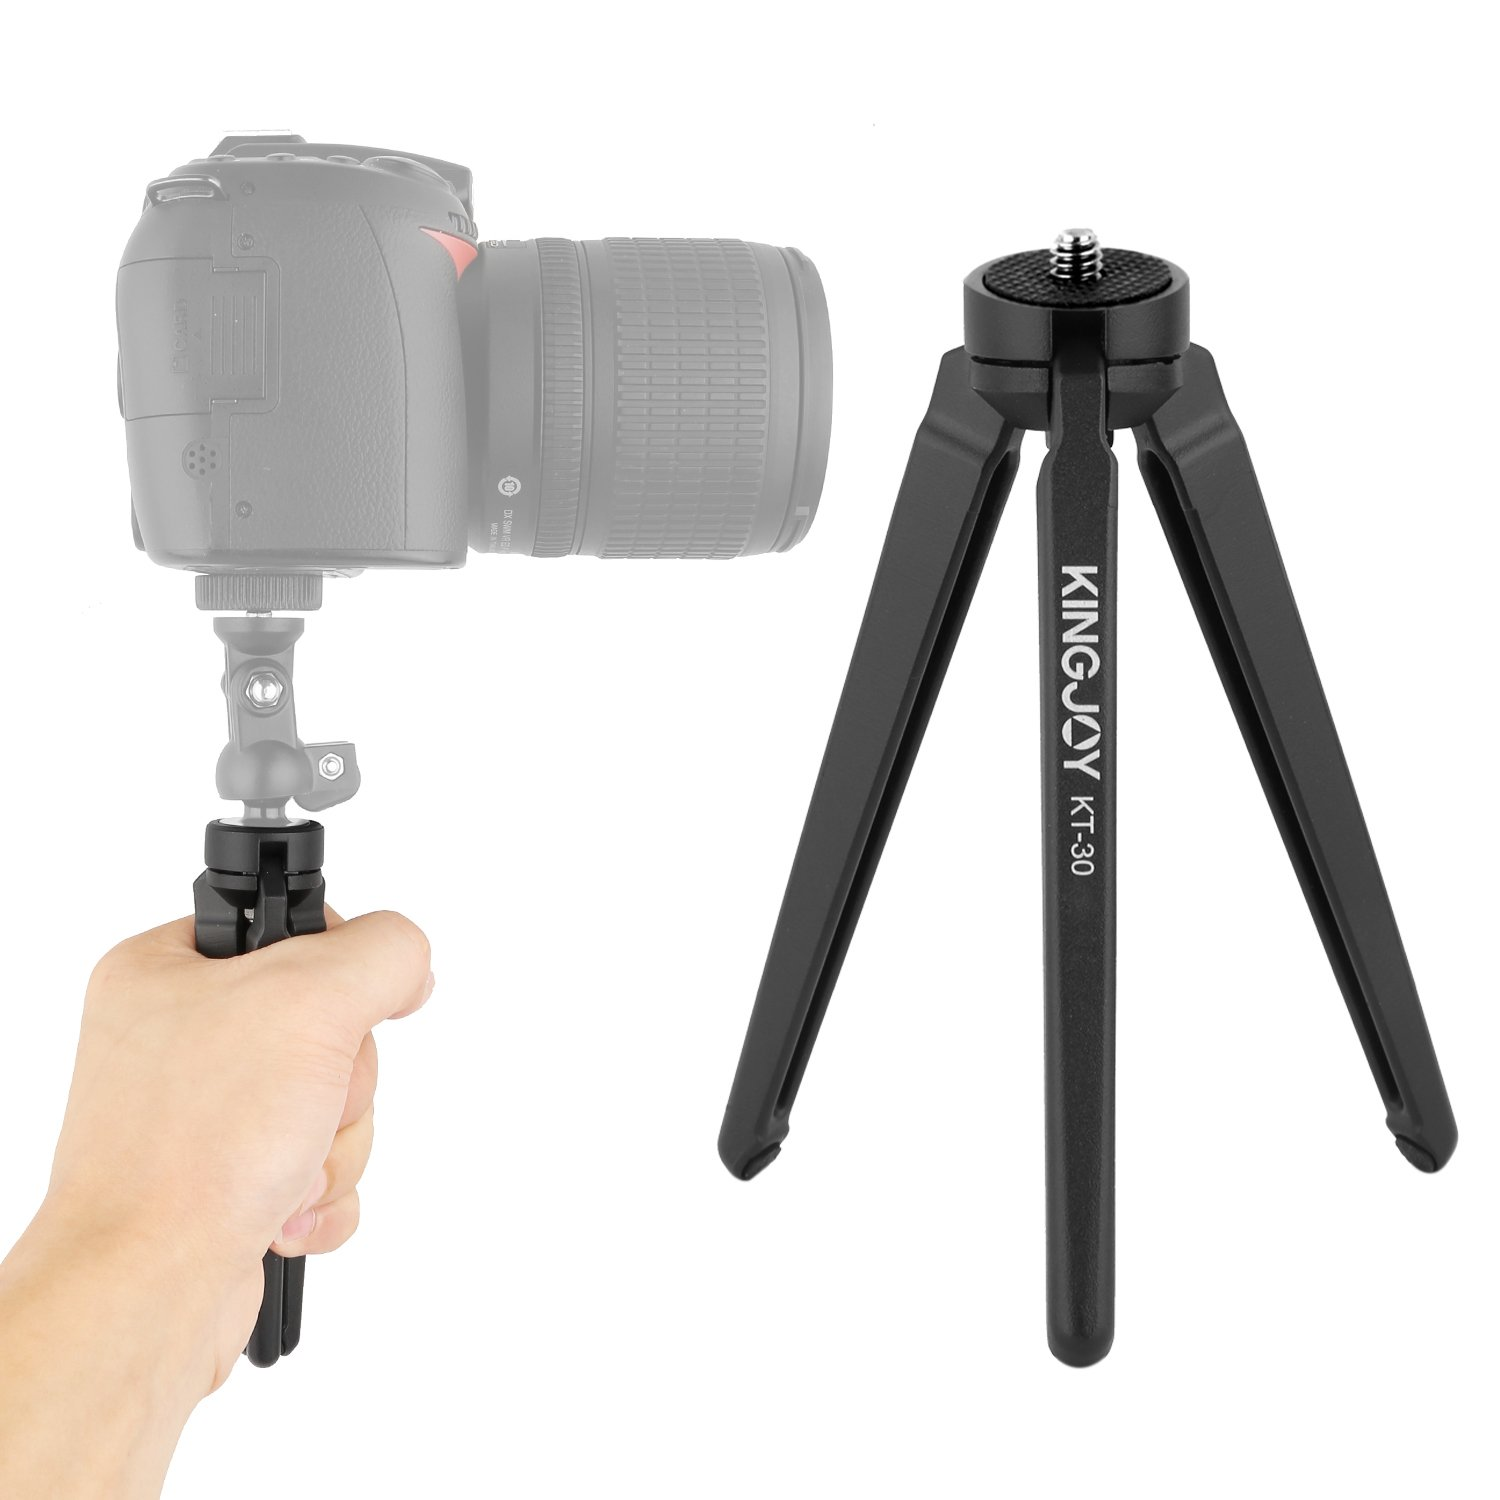 Mini Travel Tabletop Tripod Legs, Kingjue Portable Desktop Table Top Tripod Stand without Ball Head /Load up to 2.5kg/5.5lbs